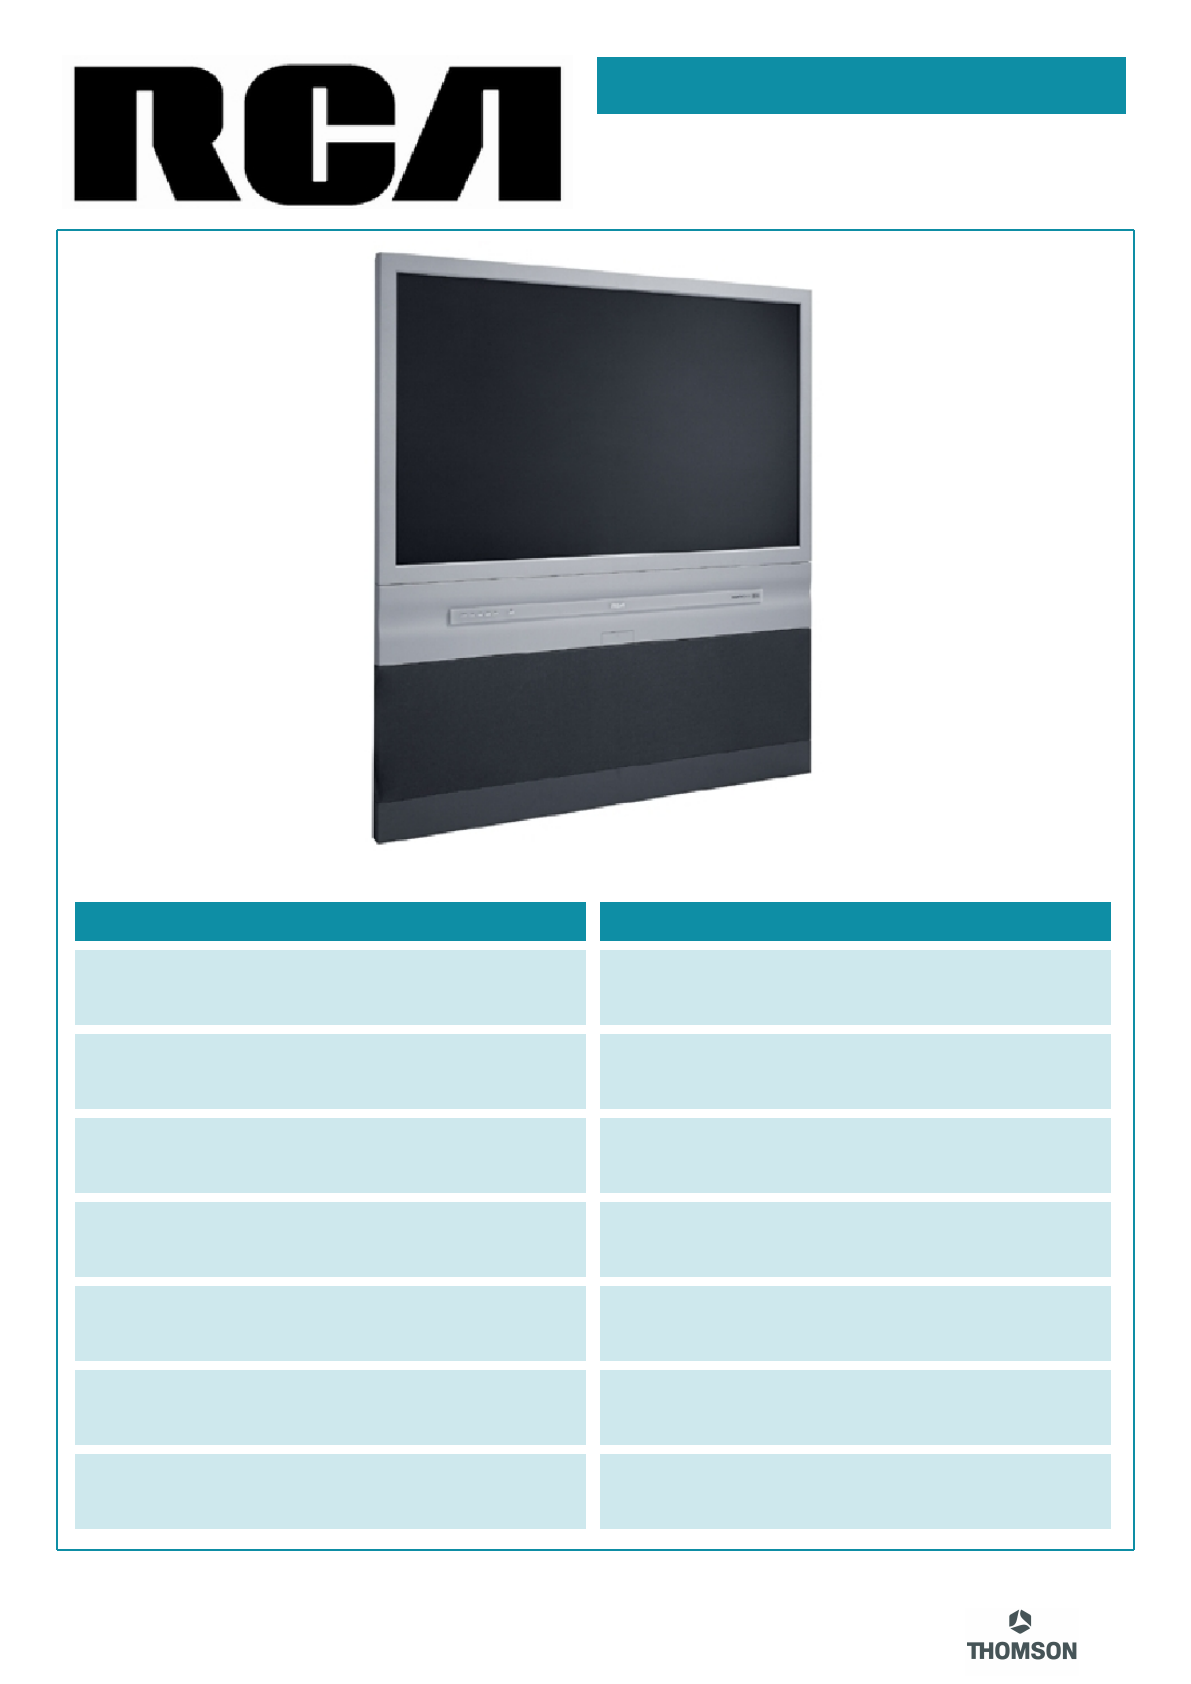 rca flat panel television d52w19 user guide manualsonline com rh tv manualsonline com rca crt tv service manual rca crt tv service manual